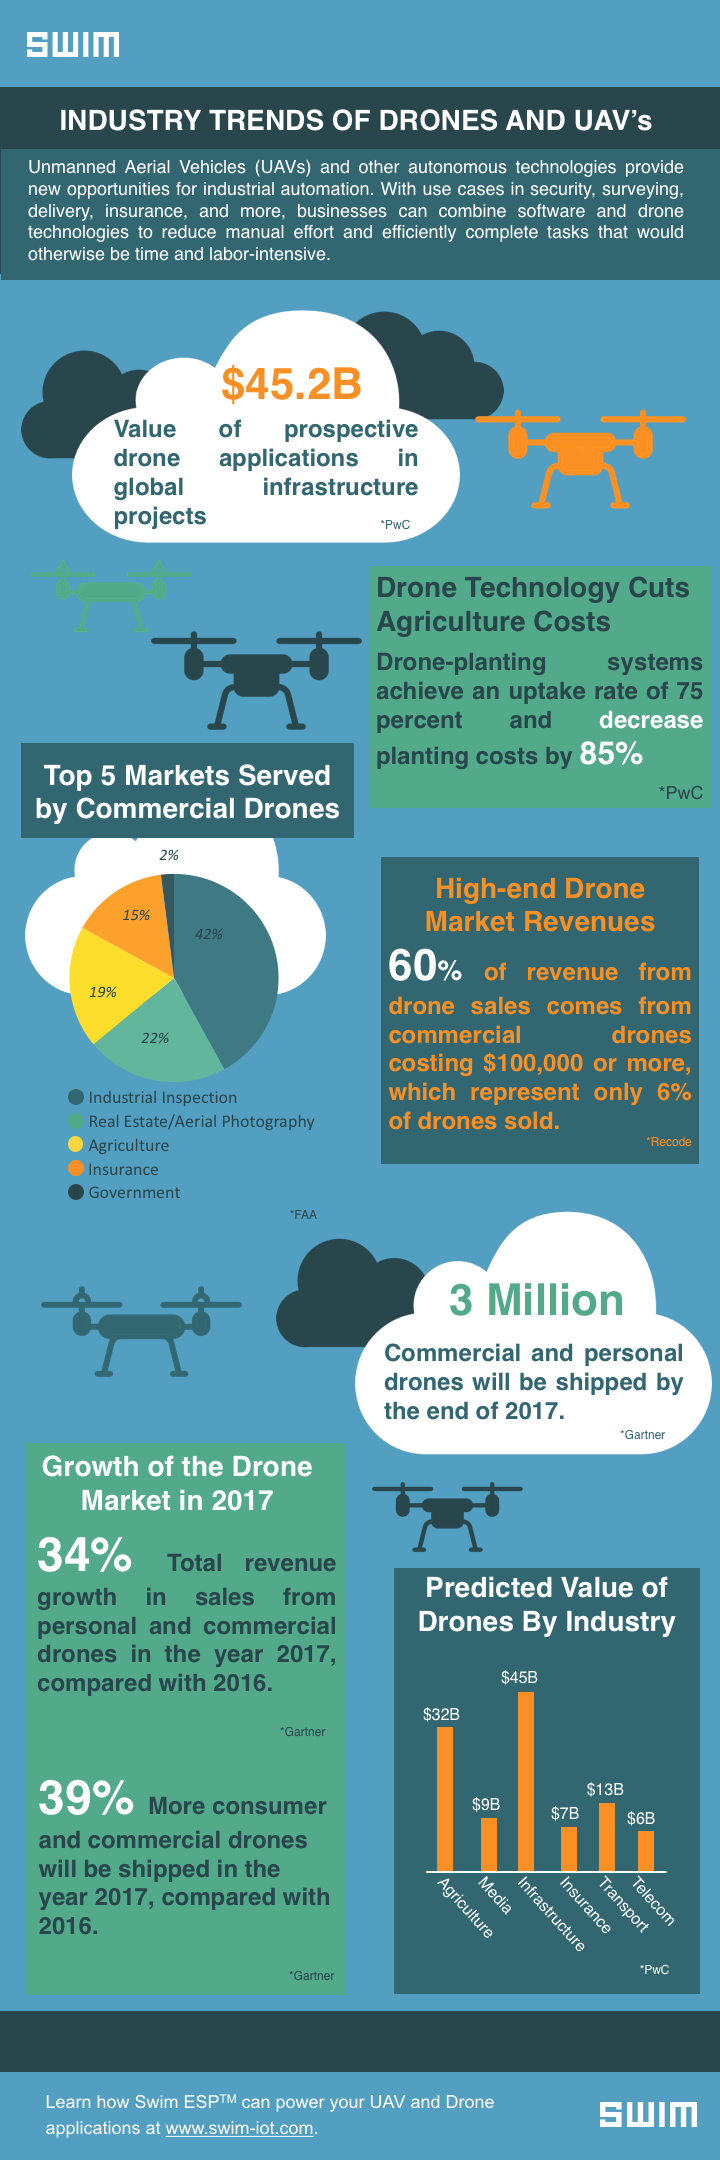 Industry Trends of Drones and UAV's Infographic | Swim Inc.